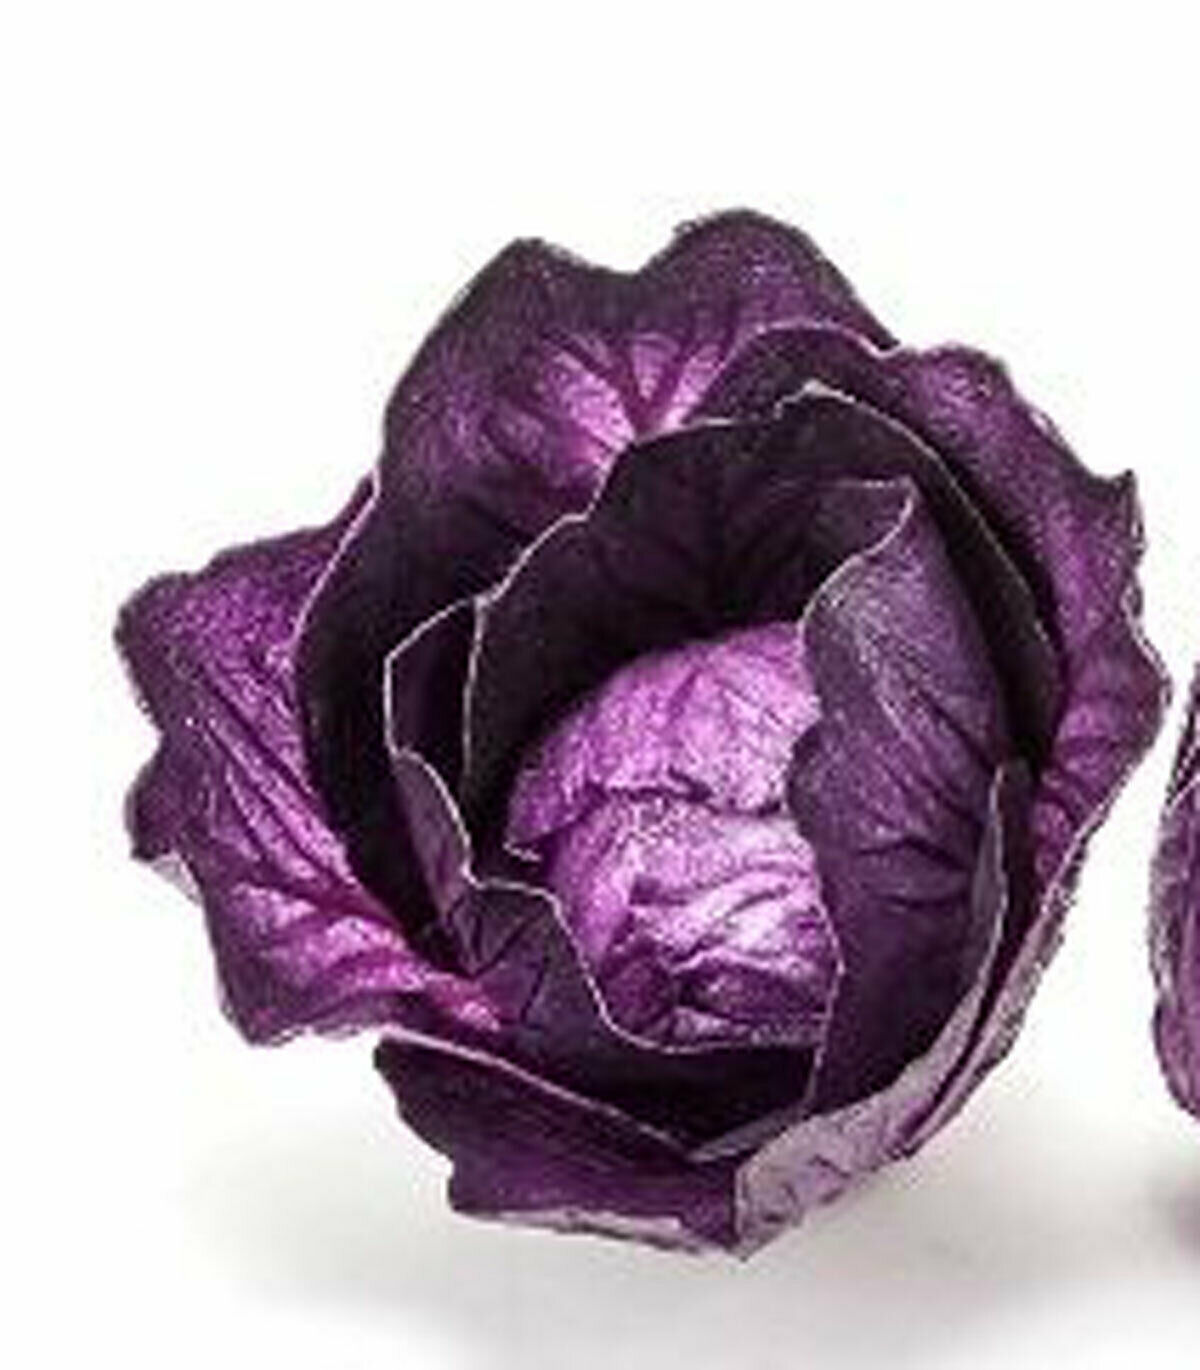 Artificial Single Small Green Cabbage Or Fake Iceberg Lettuce Vegetable For Sale Online Ebay